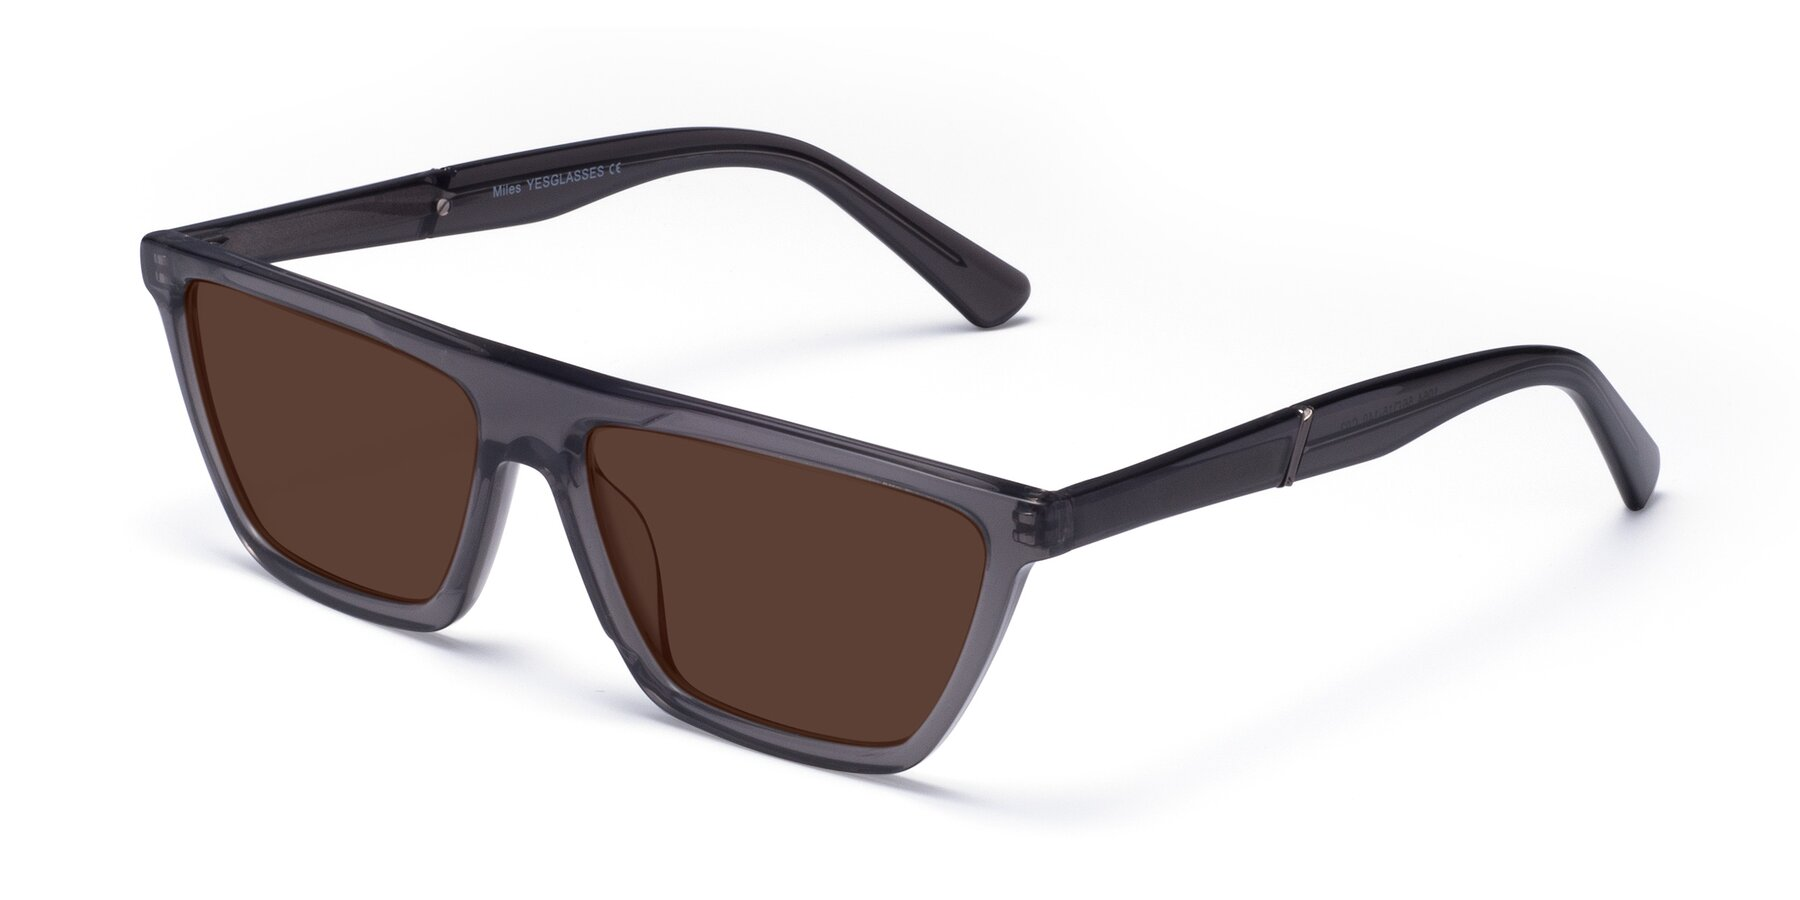 Angle of Miles in Translucent Gray with Brown Tinted Lenses